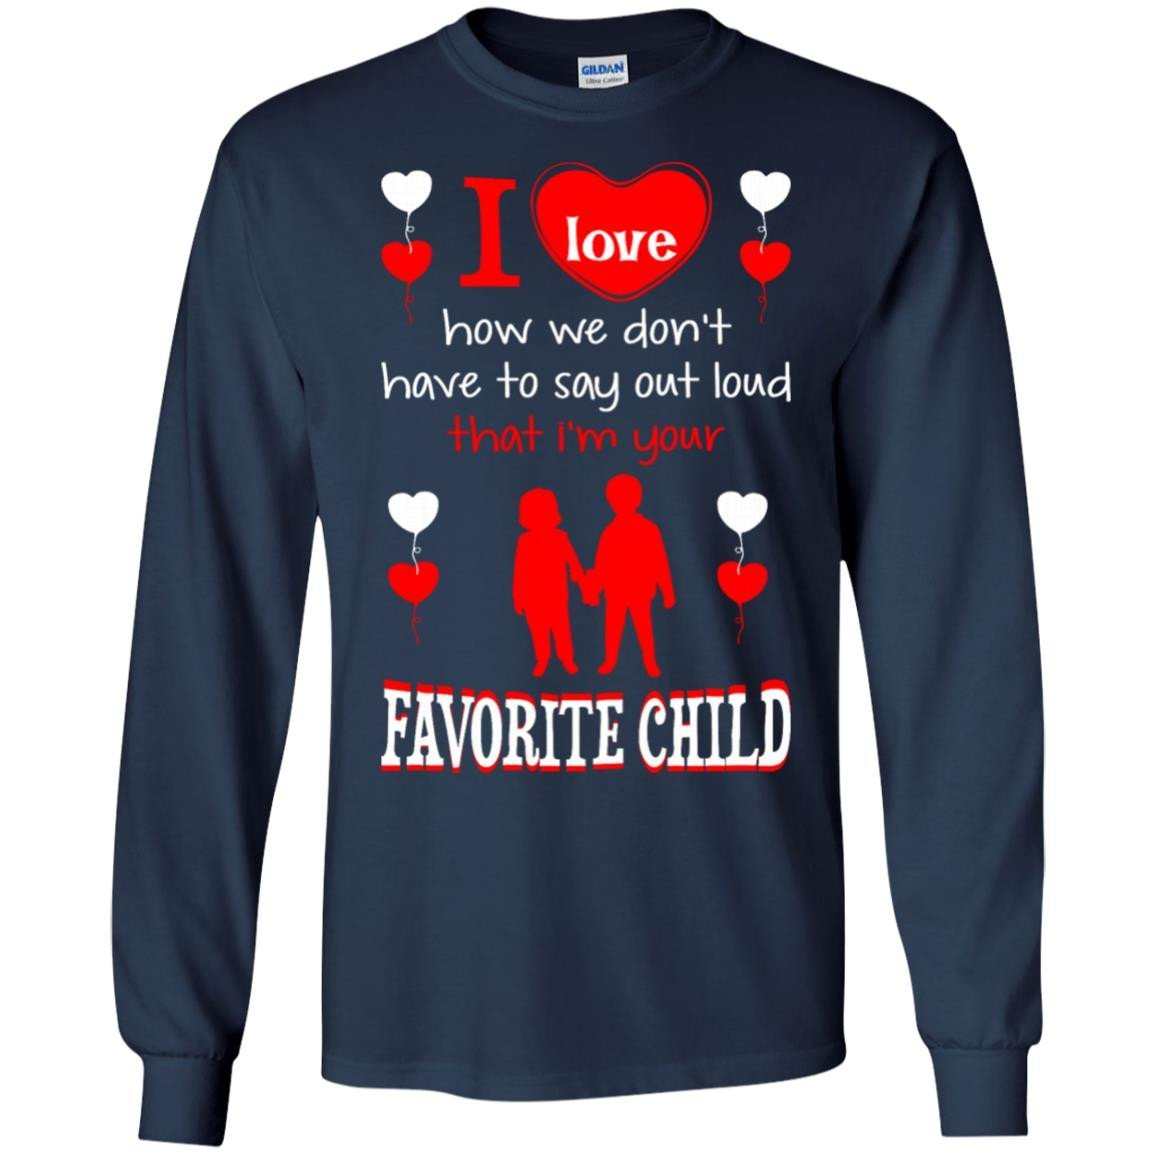 455bfef81 Dont Have Say Loud I Am Your Favorite Child T-Shirt Long Sleeve 240 ...